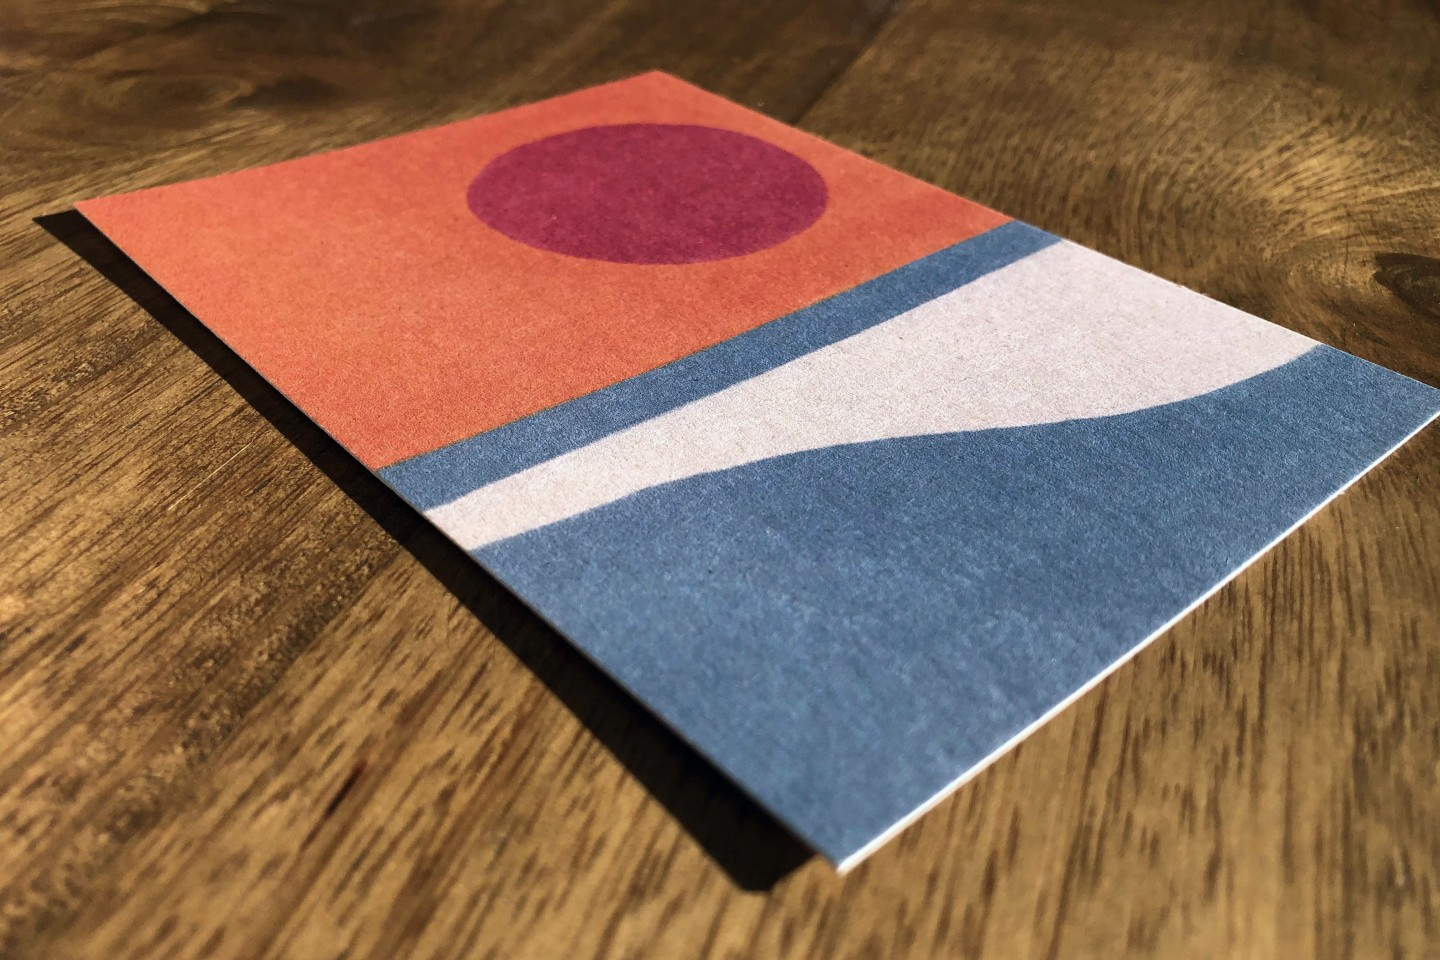 Colorful postcard on a wooden table